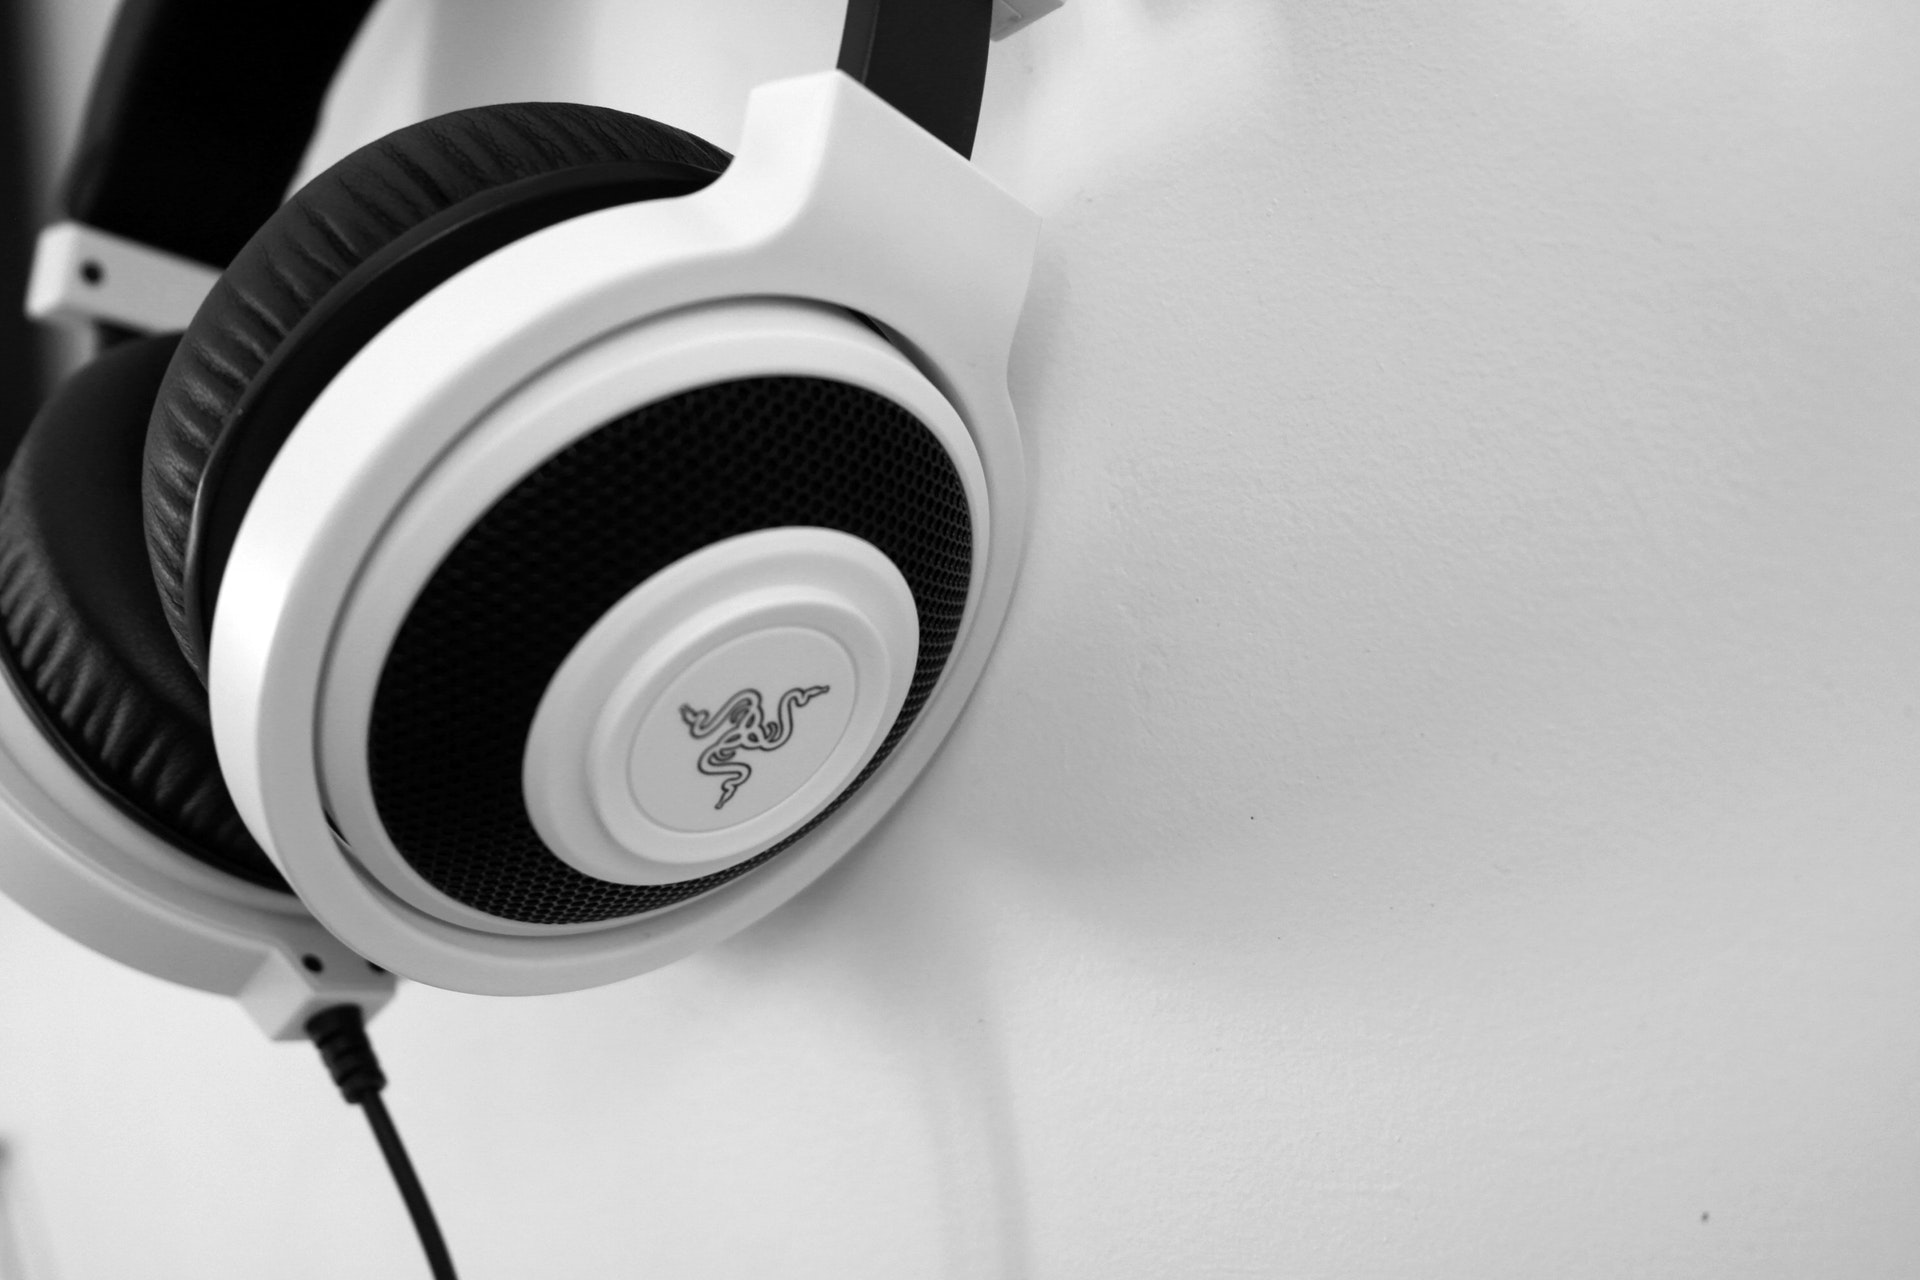 How to Clean Over-Ear Headphones